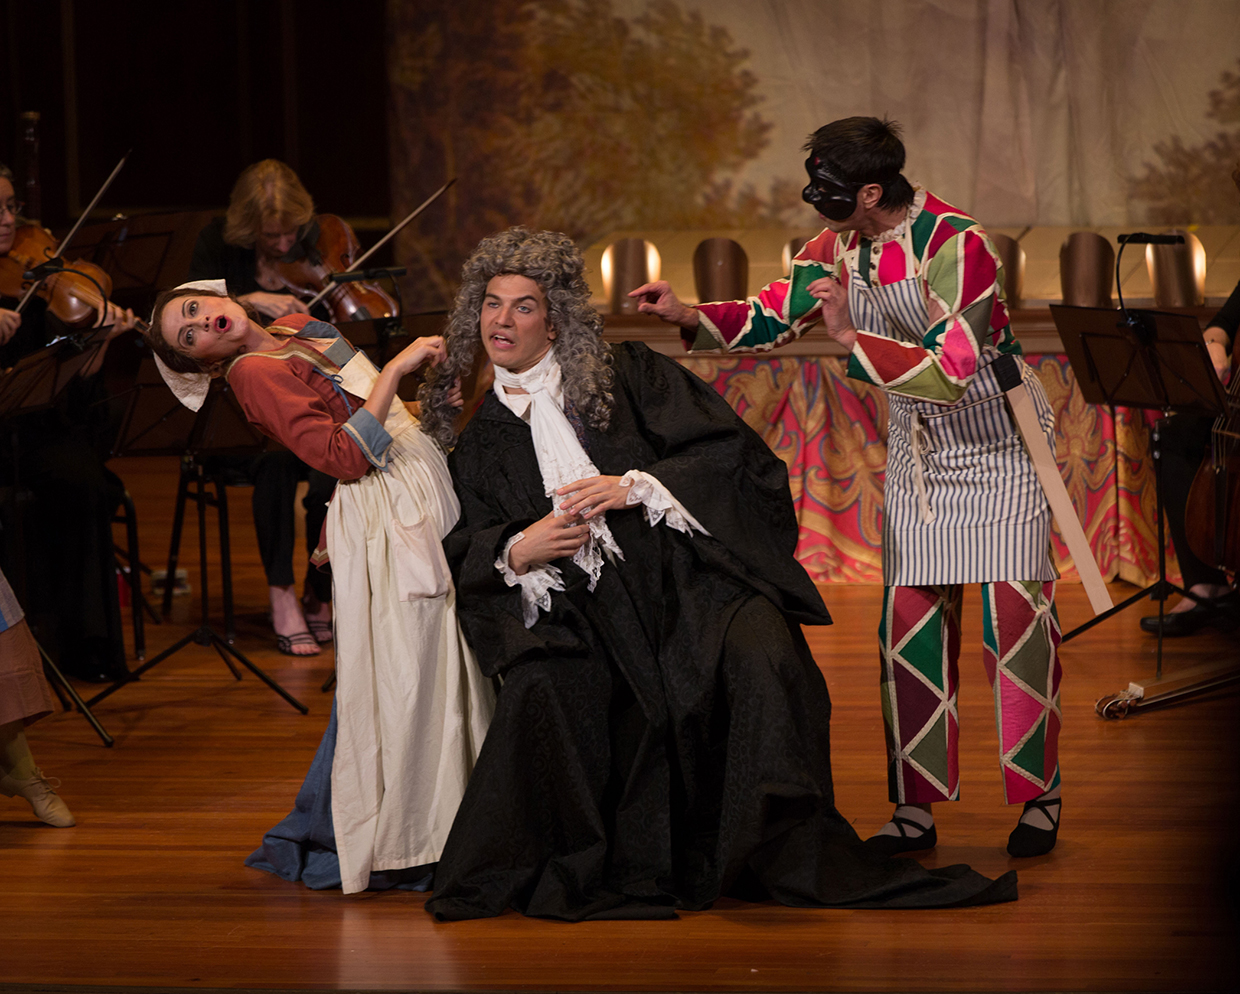 Amanda Forsythe, Douglas Williams, and Carlos Fittante in Pergolesi's La Serva Padrona. Photo Kathy Wittman.